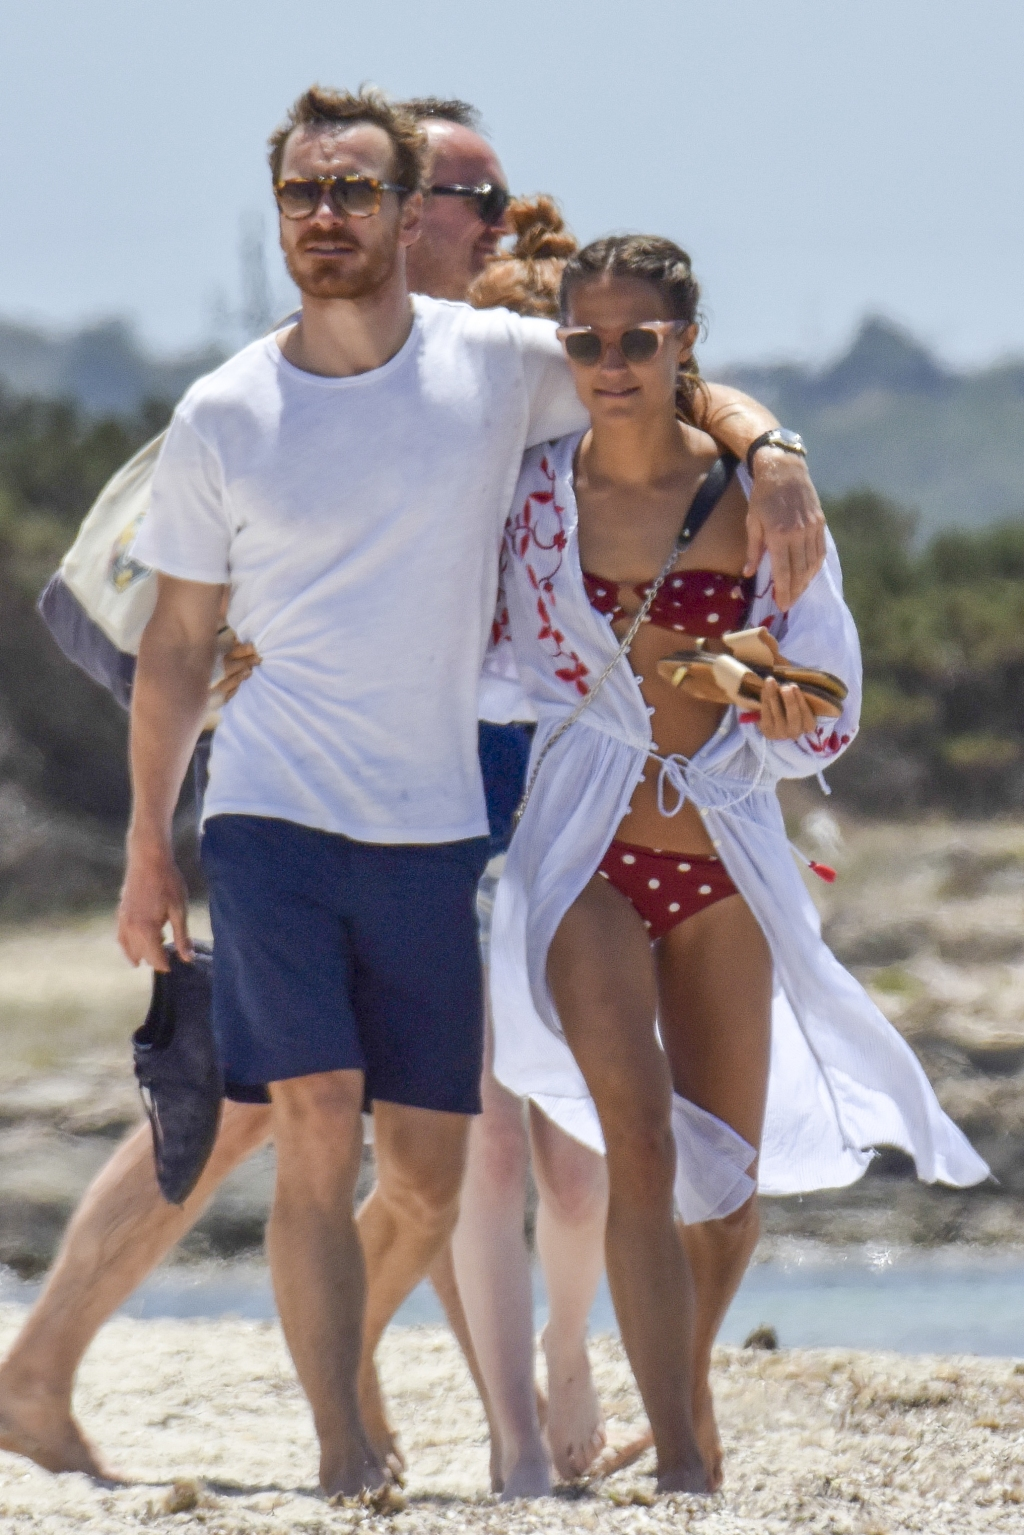 Alicia Vikander and Michael Fassbender beach PDA